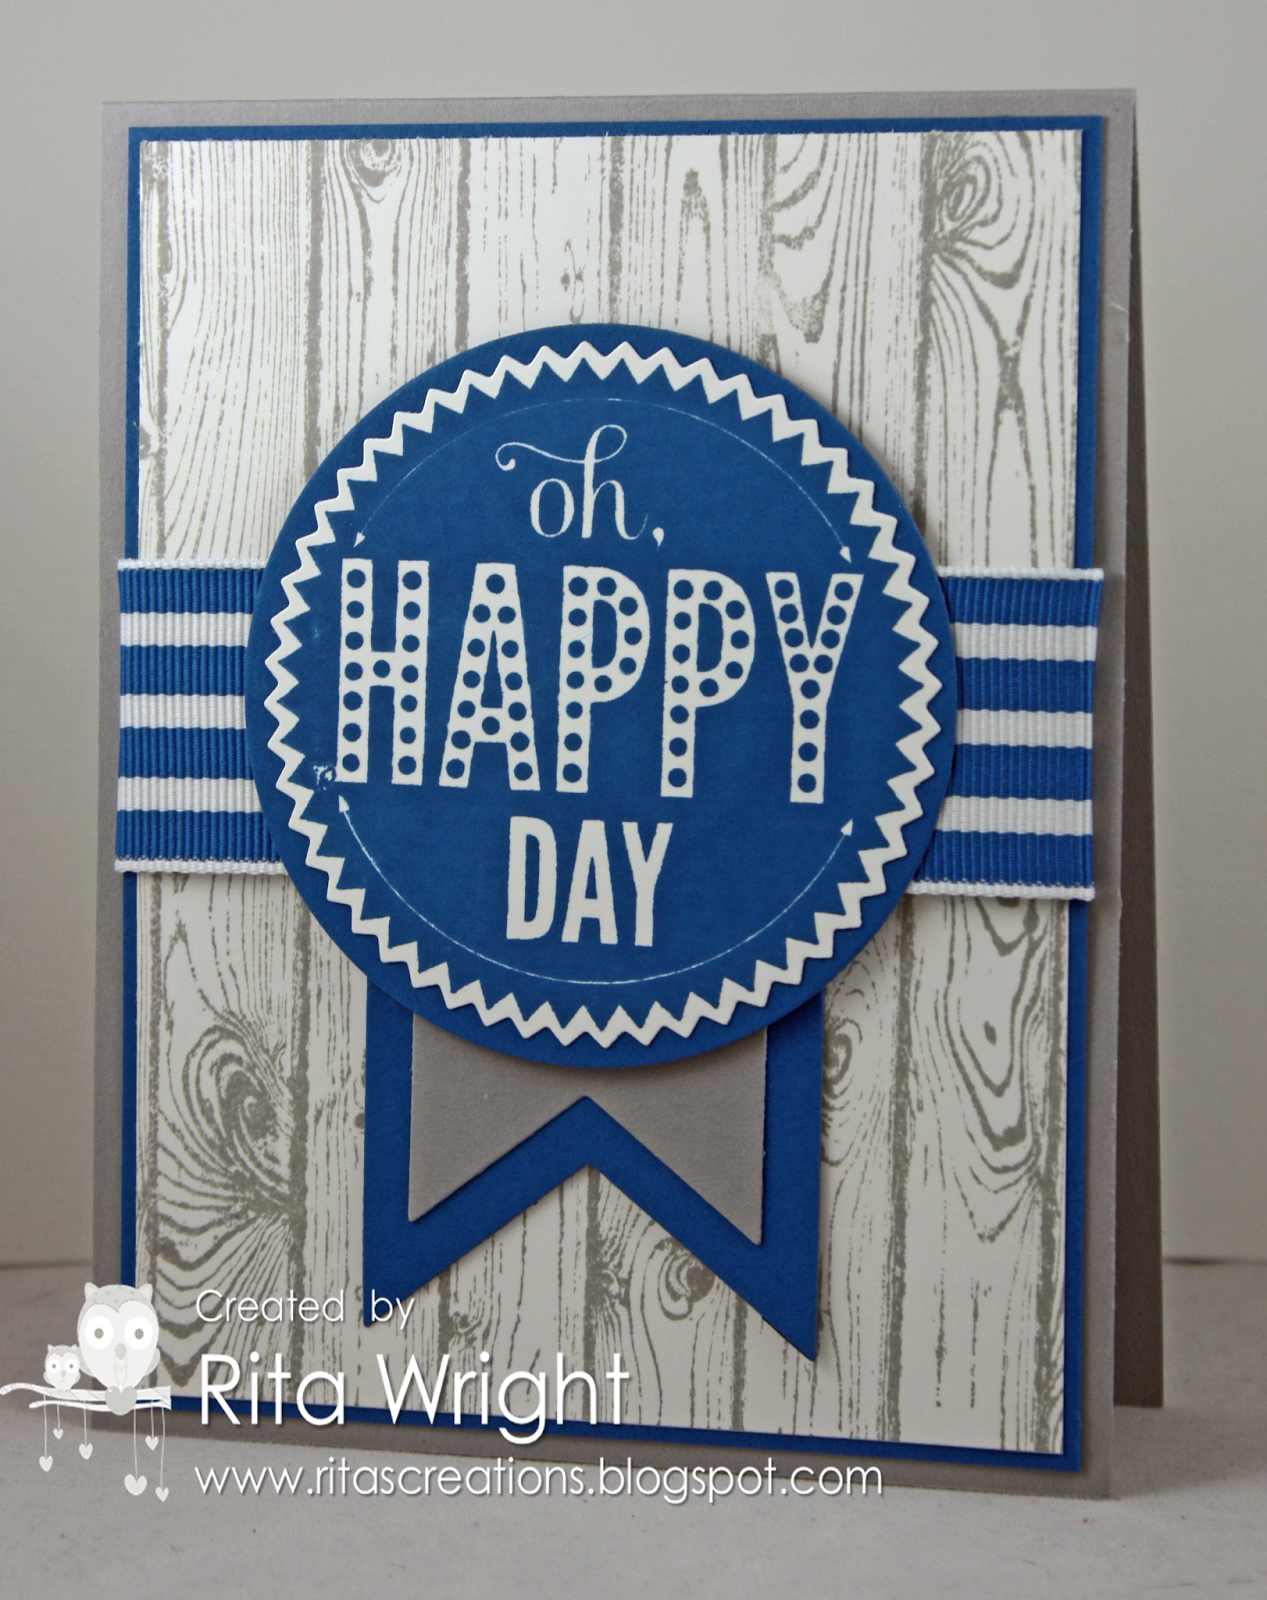 Stampinu up starburst sayings oh happy day card with the wood grain